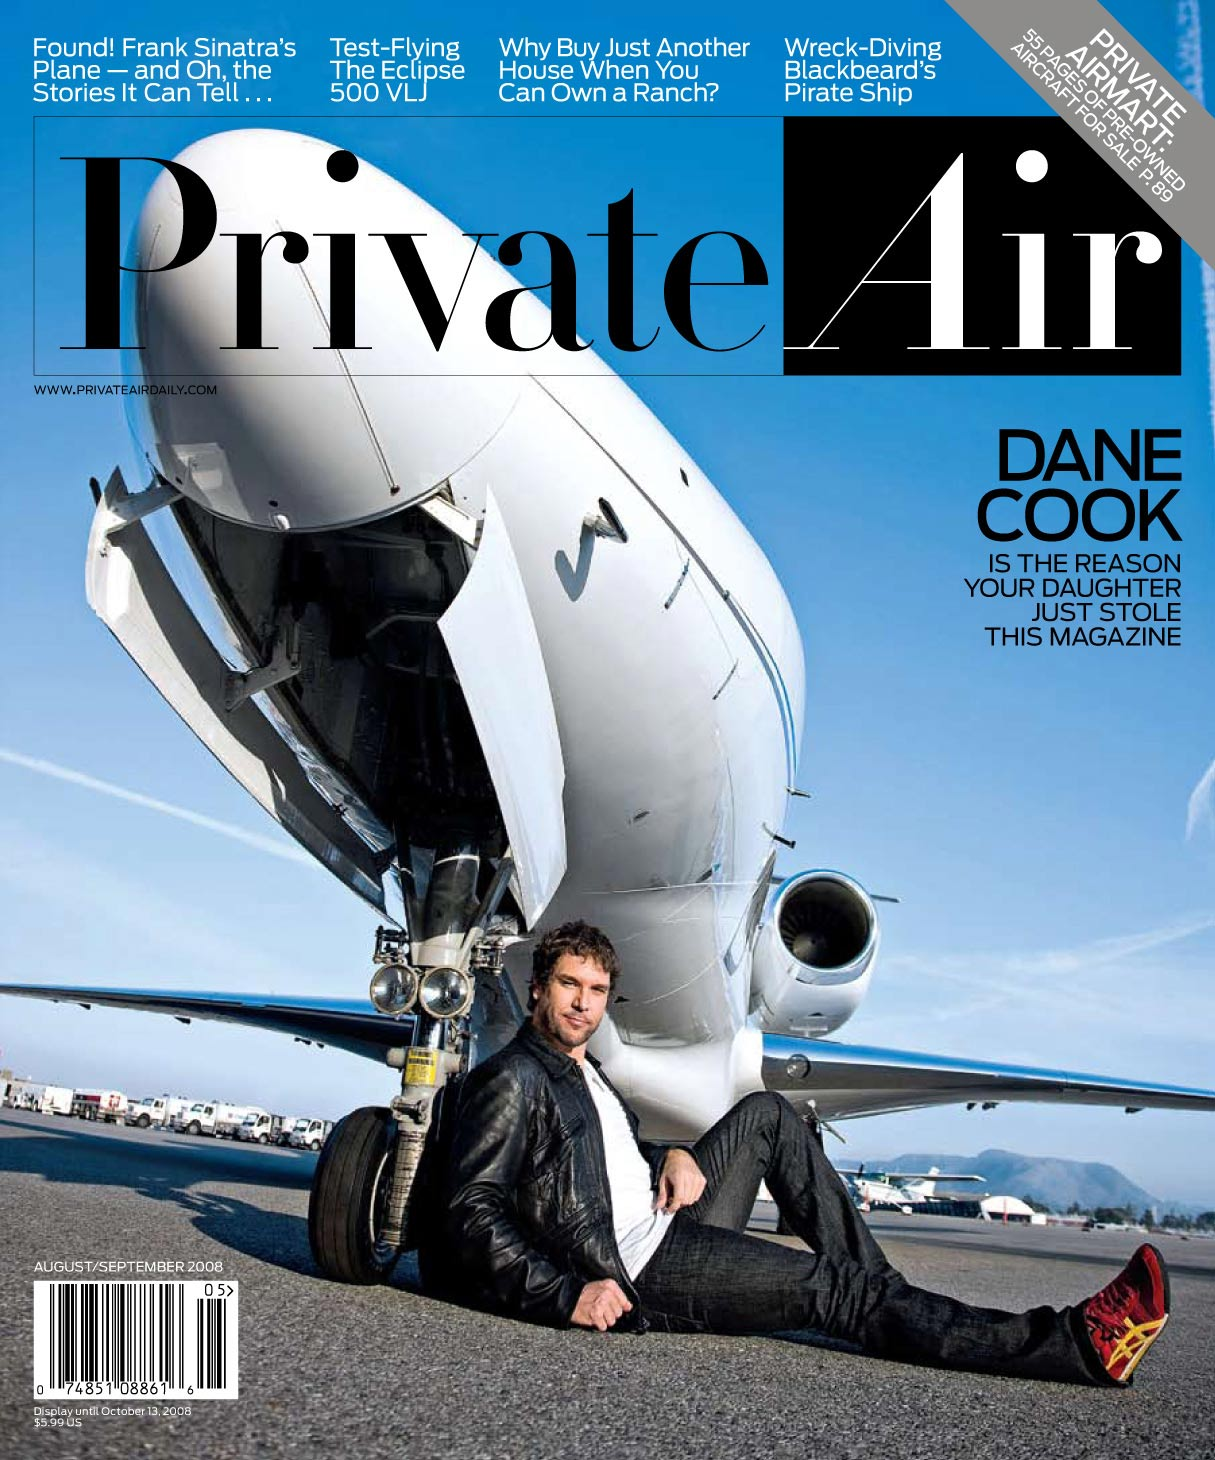 web_dane_cook_cover.jpg